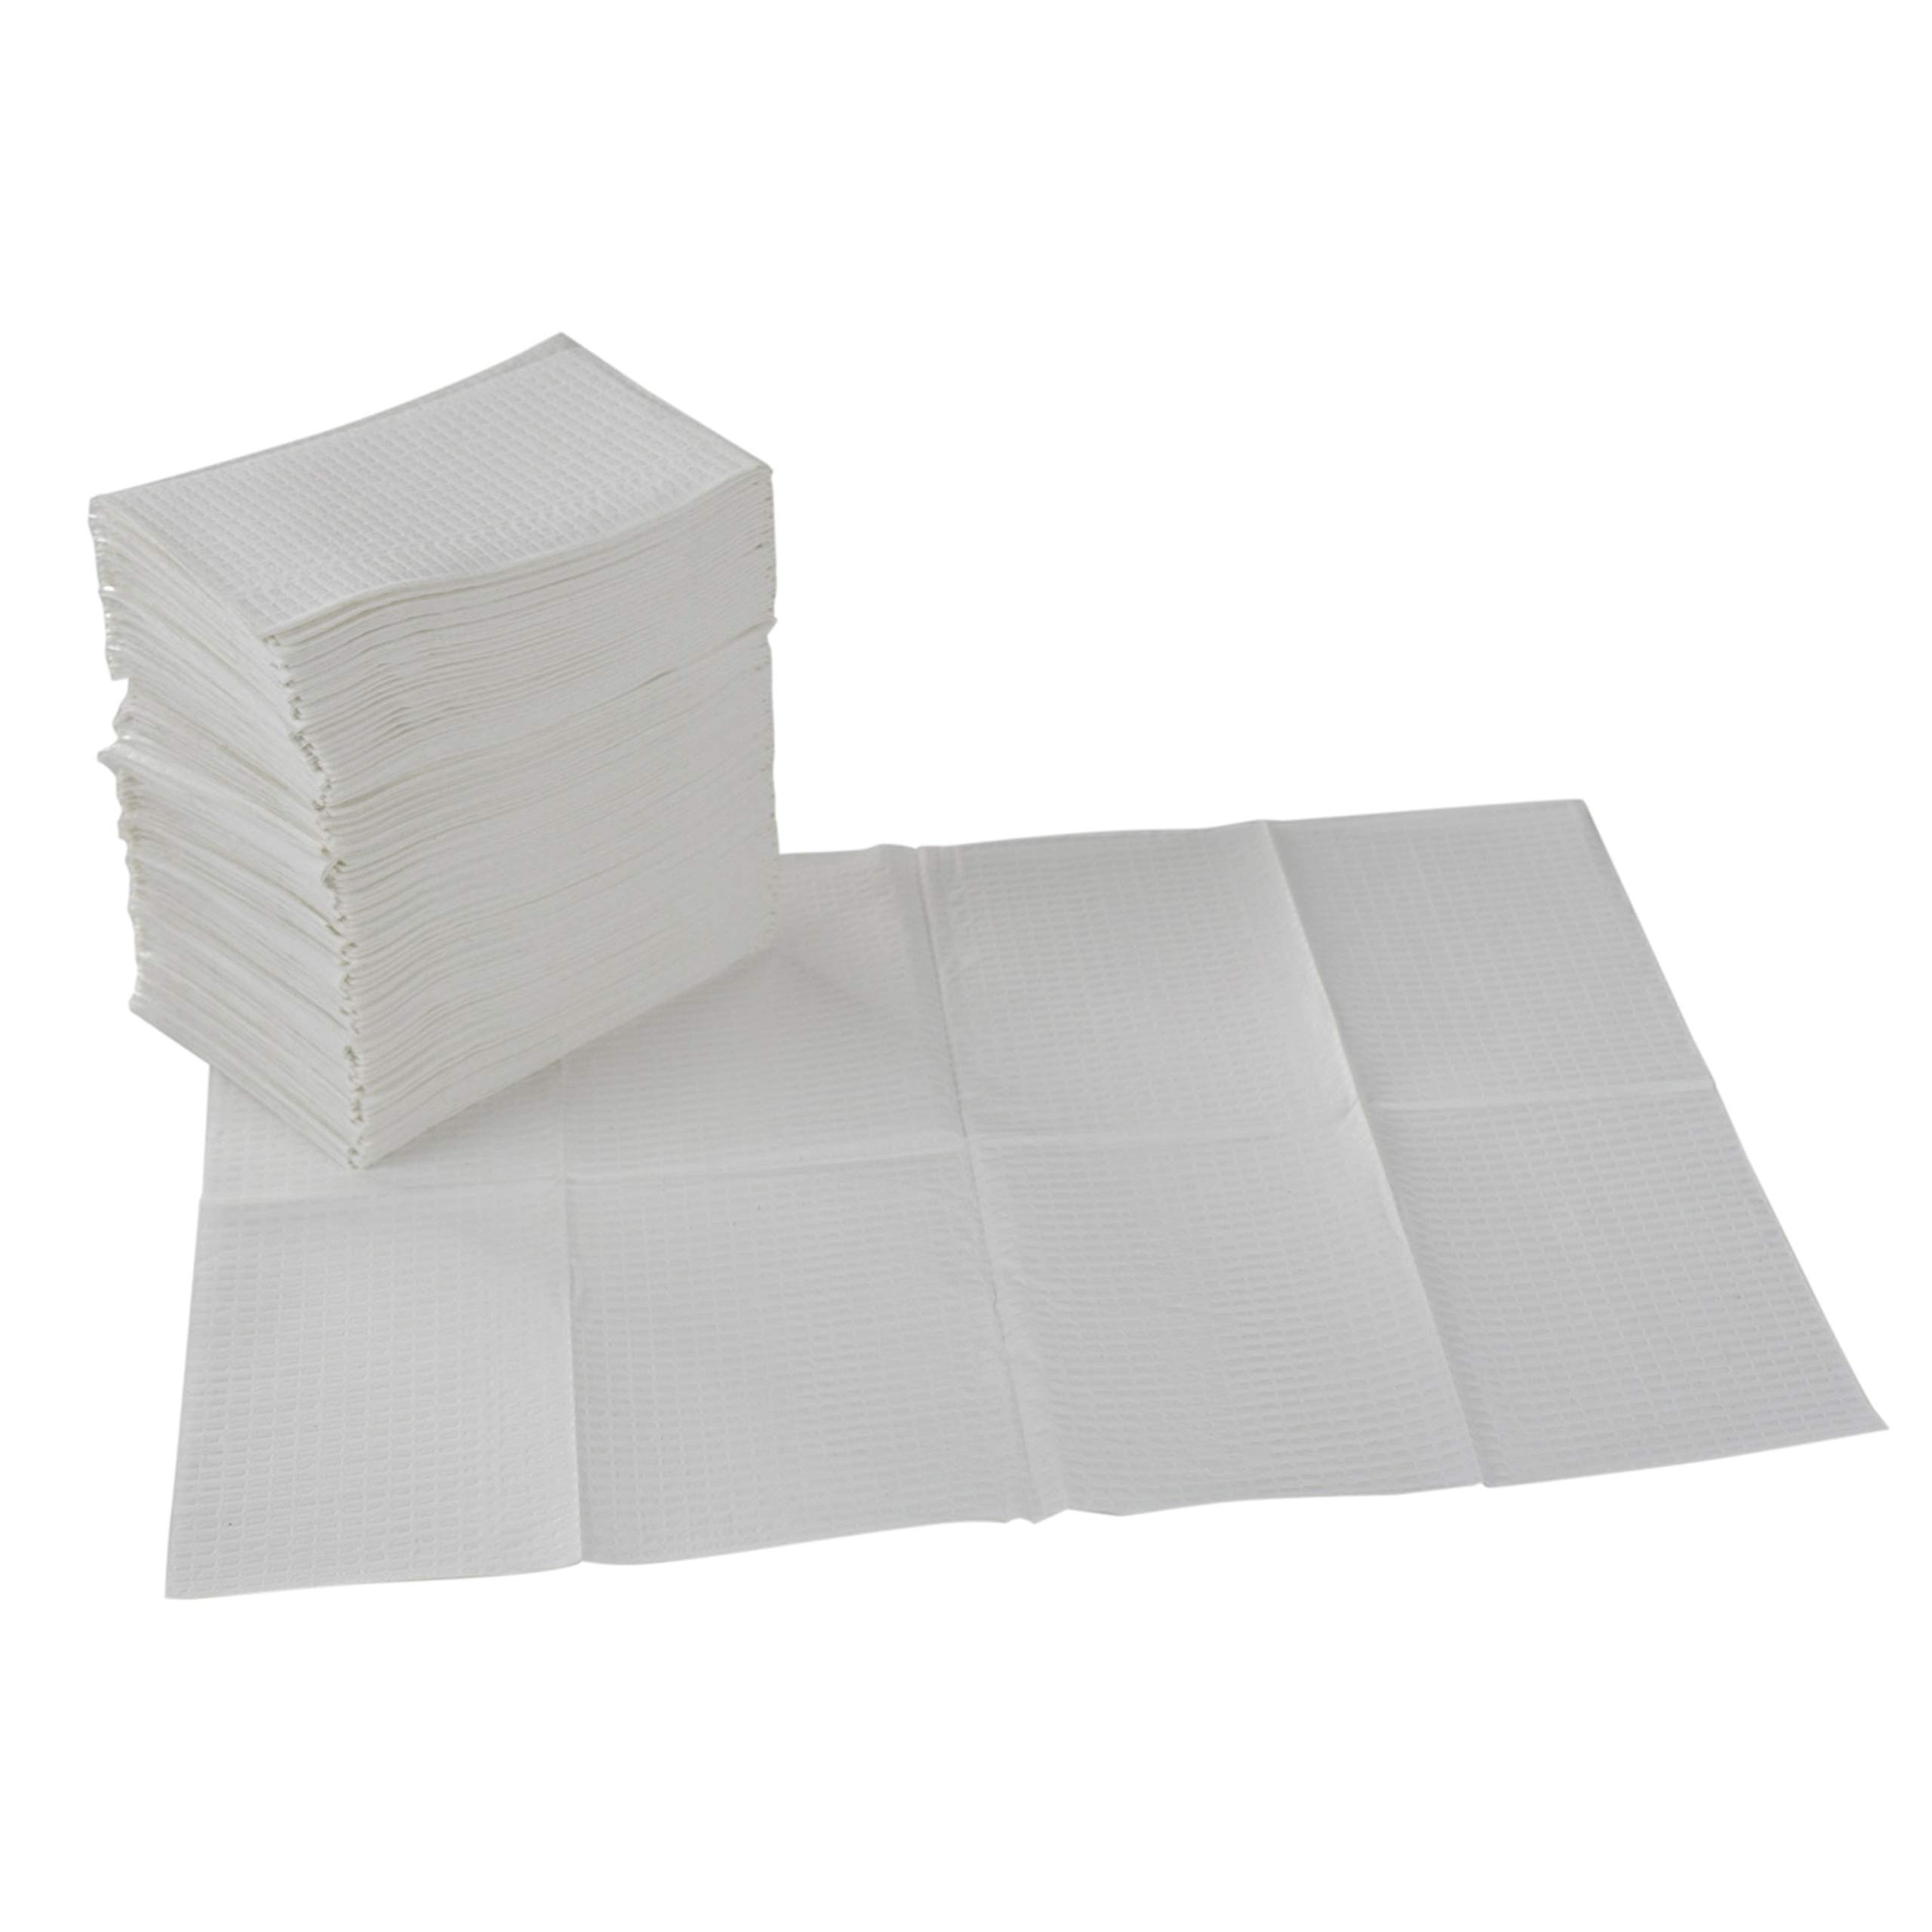 ECR4Kids 2-Ply Tissue and Poly Disposable Sanitary Liner for Baby Changing Stations, Dental Bibs, Tattoo Shops, and Senior Care, 18'' x 13'', 500-Pack - White by ECR4Kids